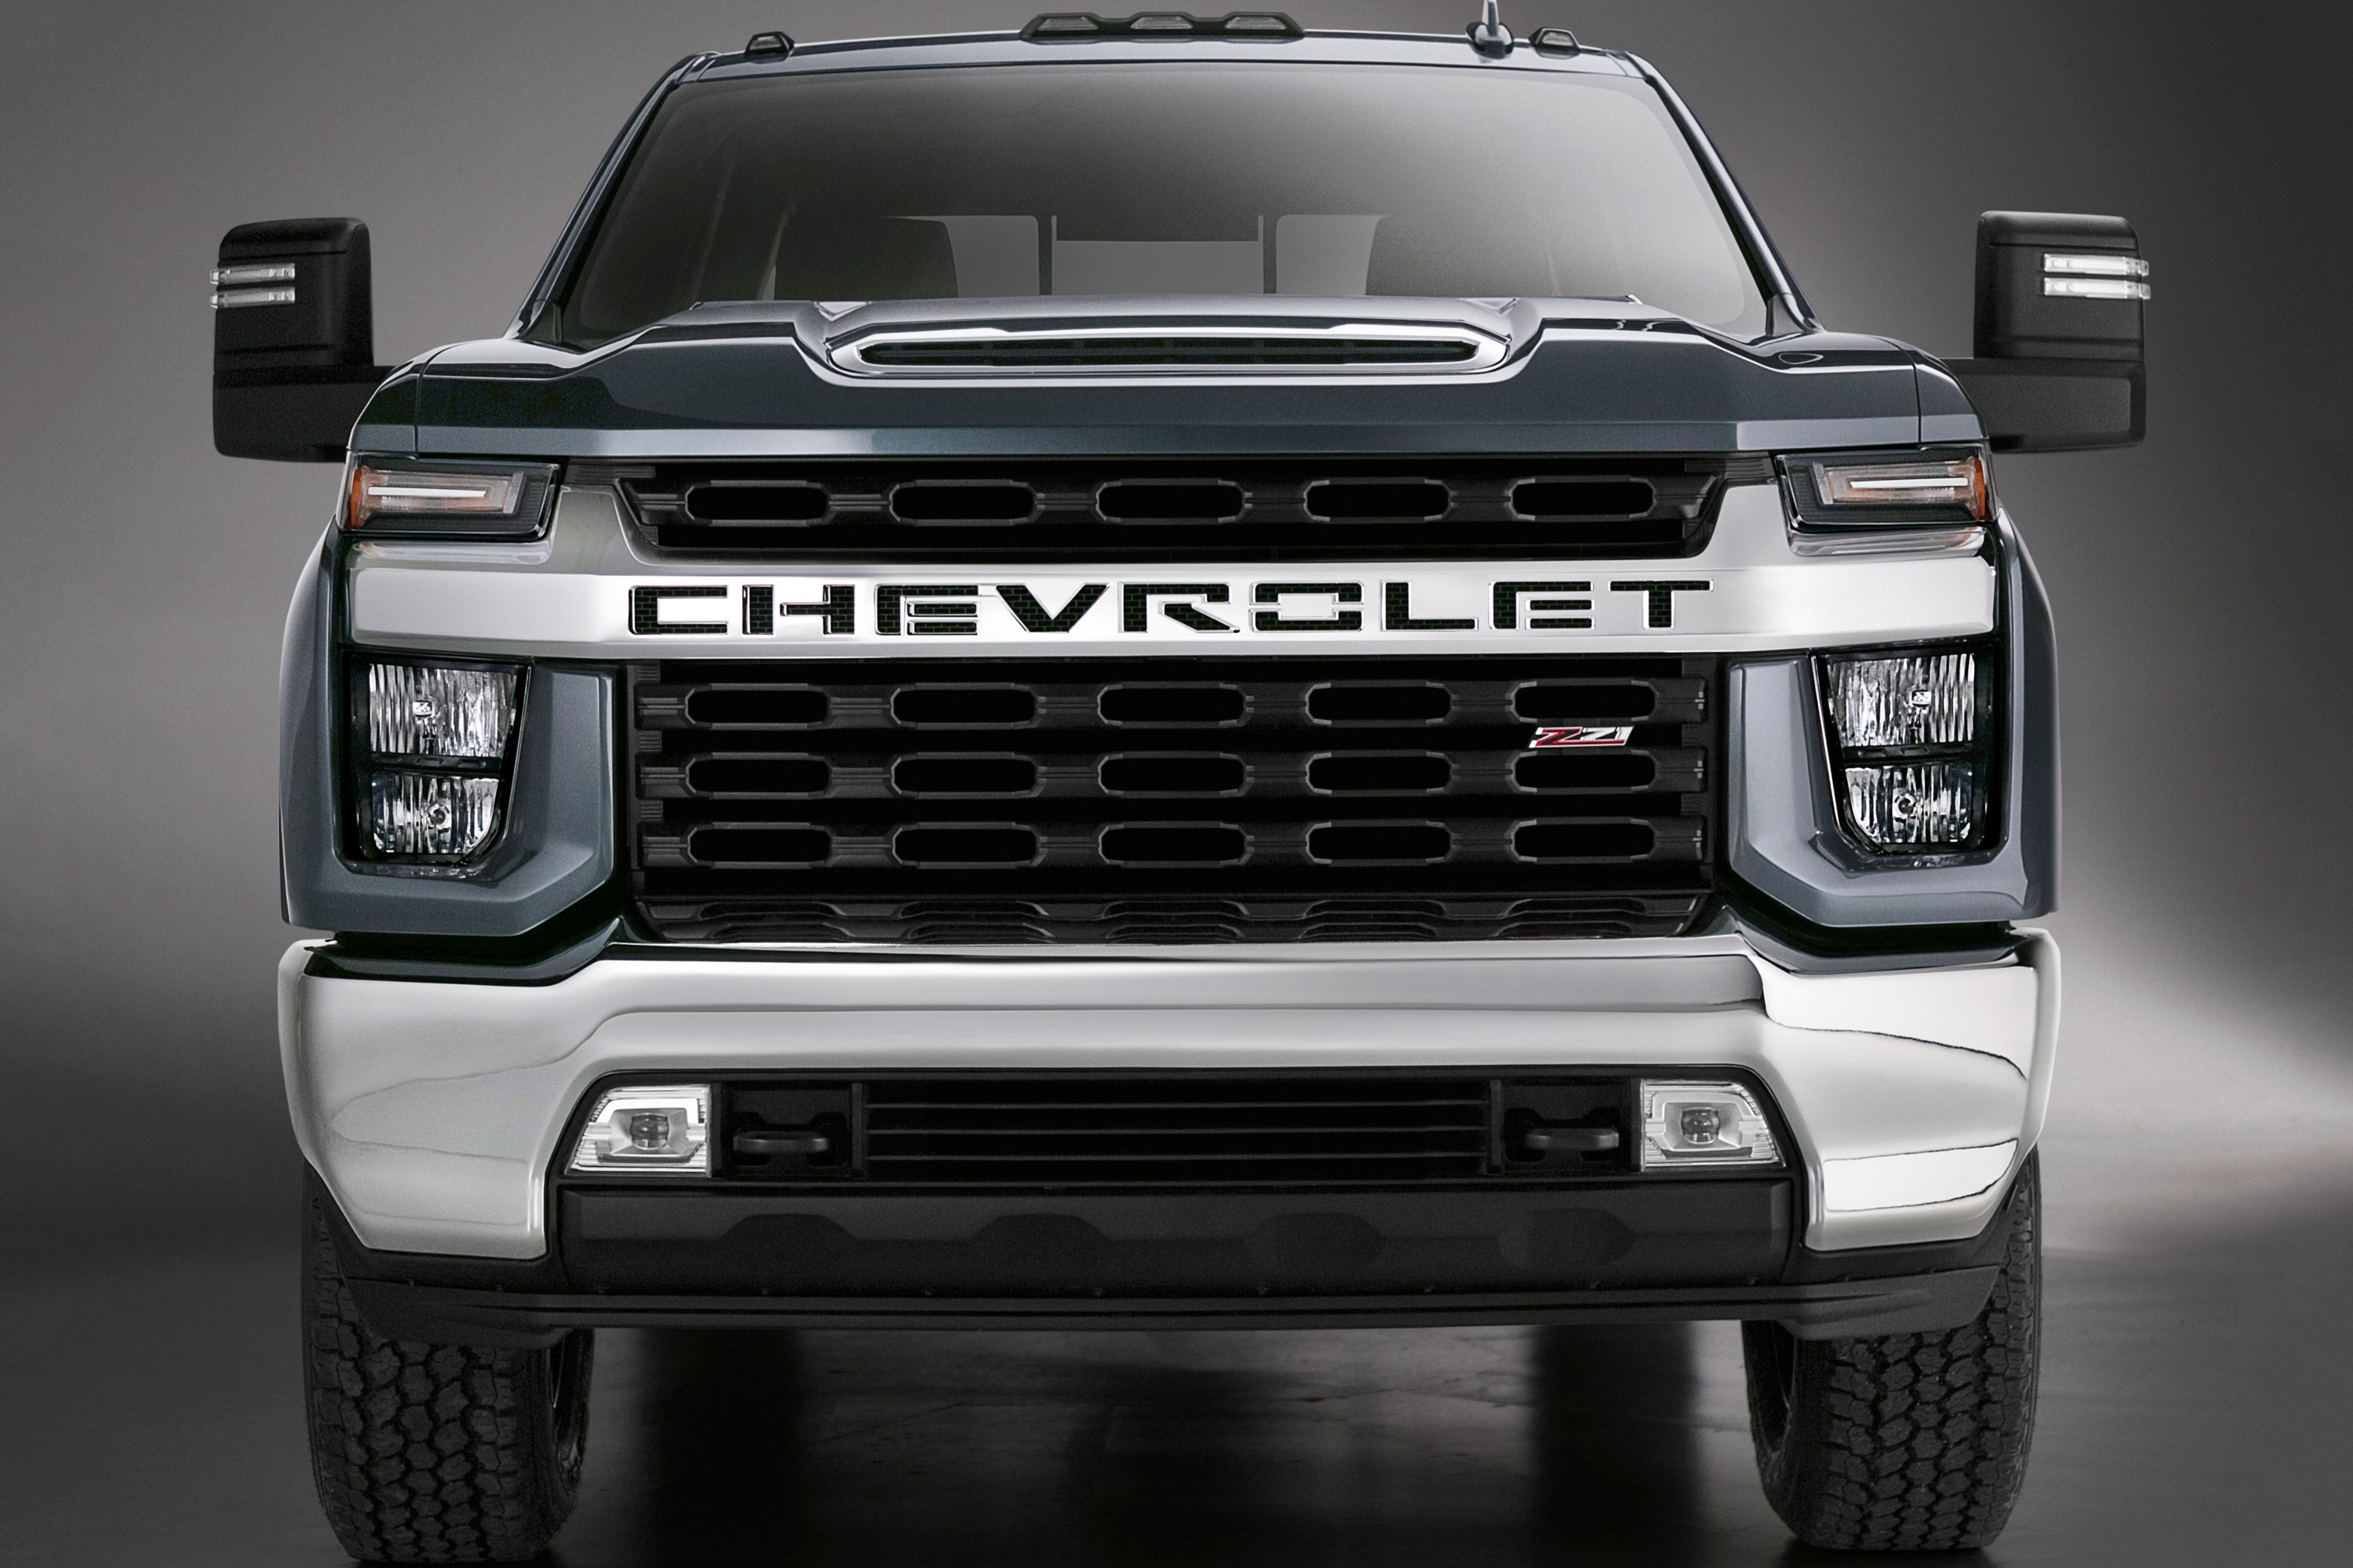 Chevrolet Goes Big With the 2020 Silverado HD | GearJunkie